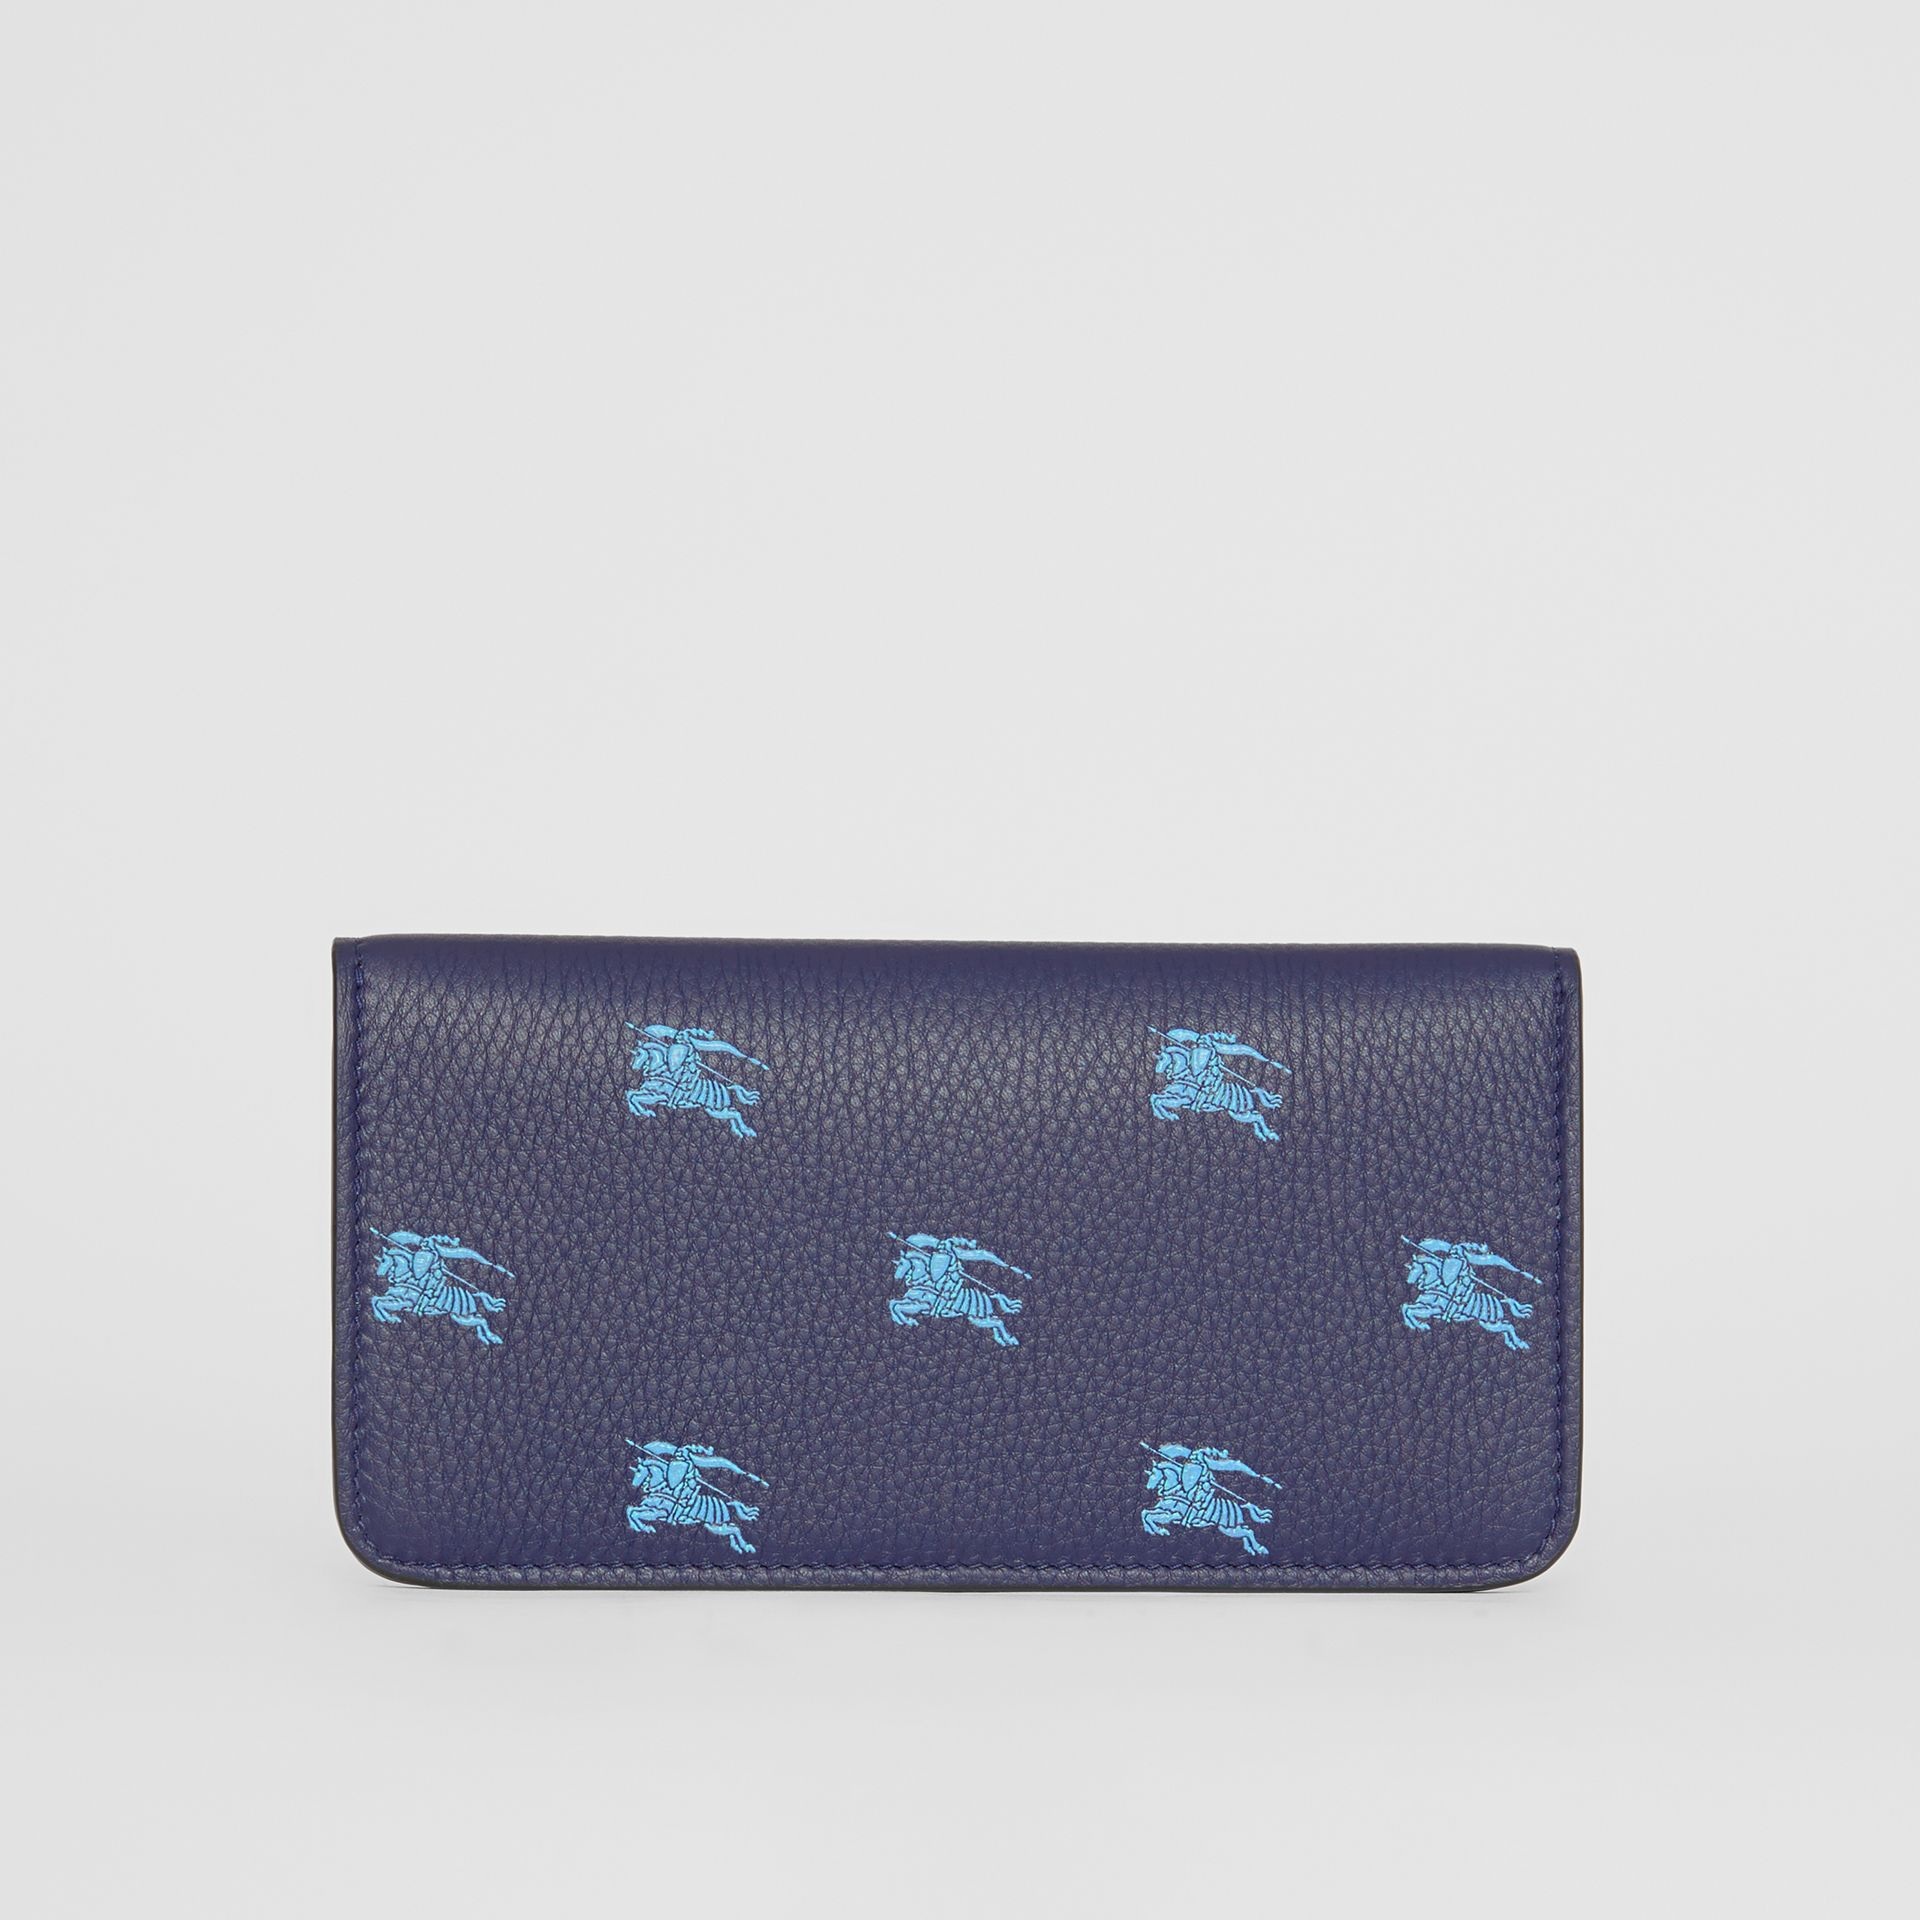 EKD Leather Phone Wallet in Regency Blue - Women | Burberry - gallery image 5